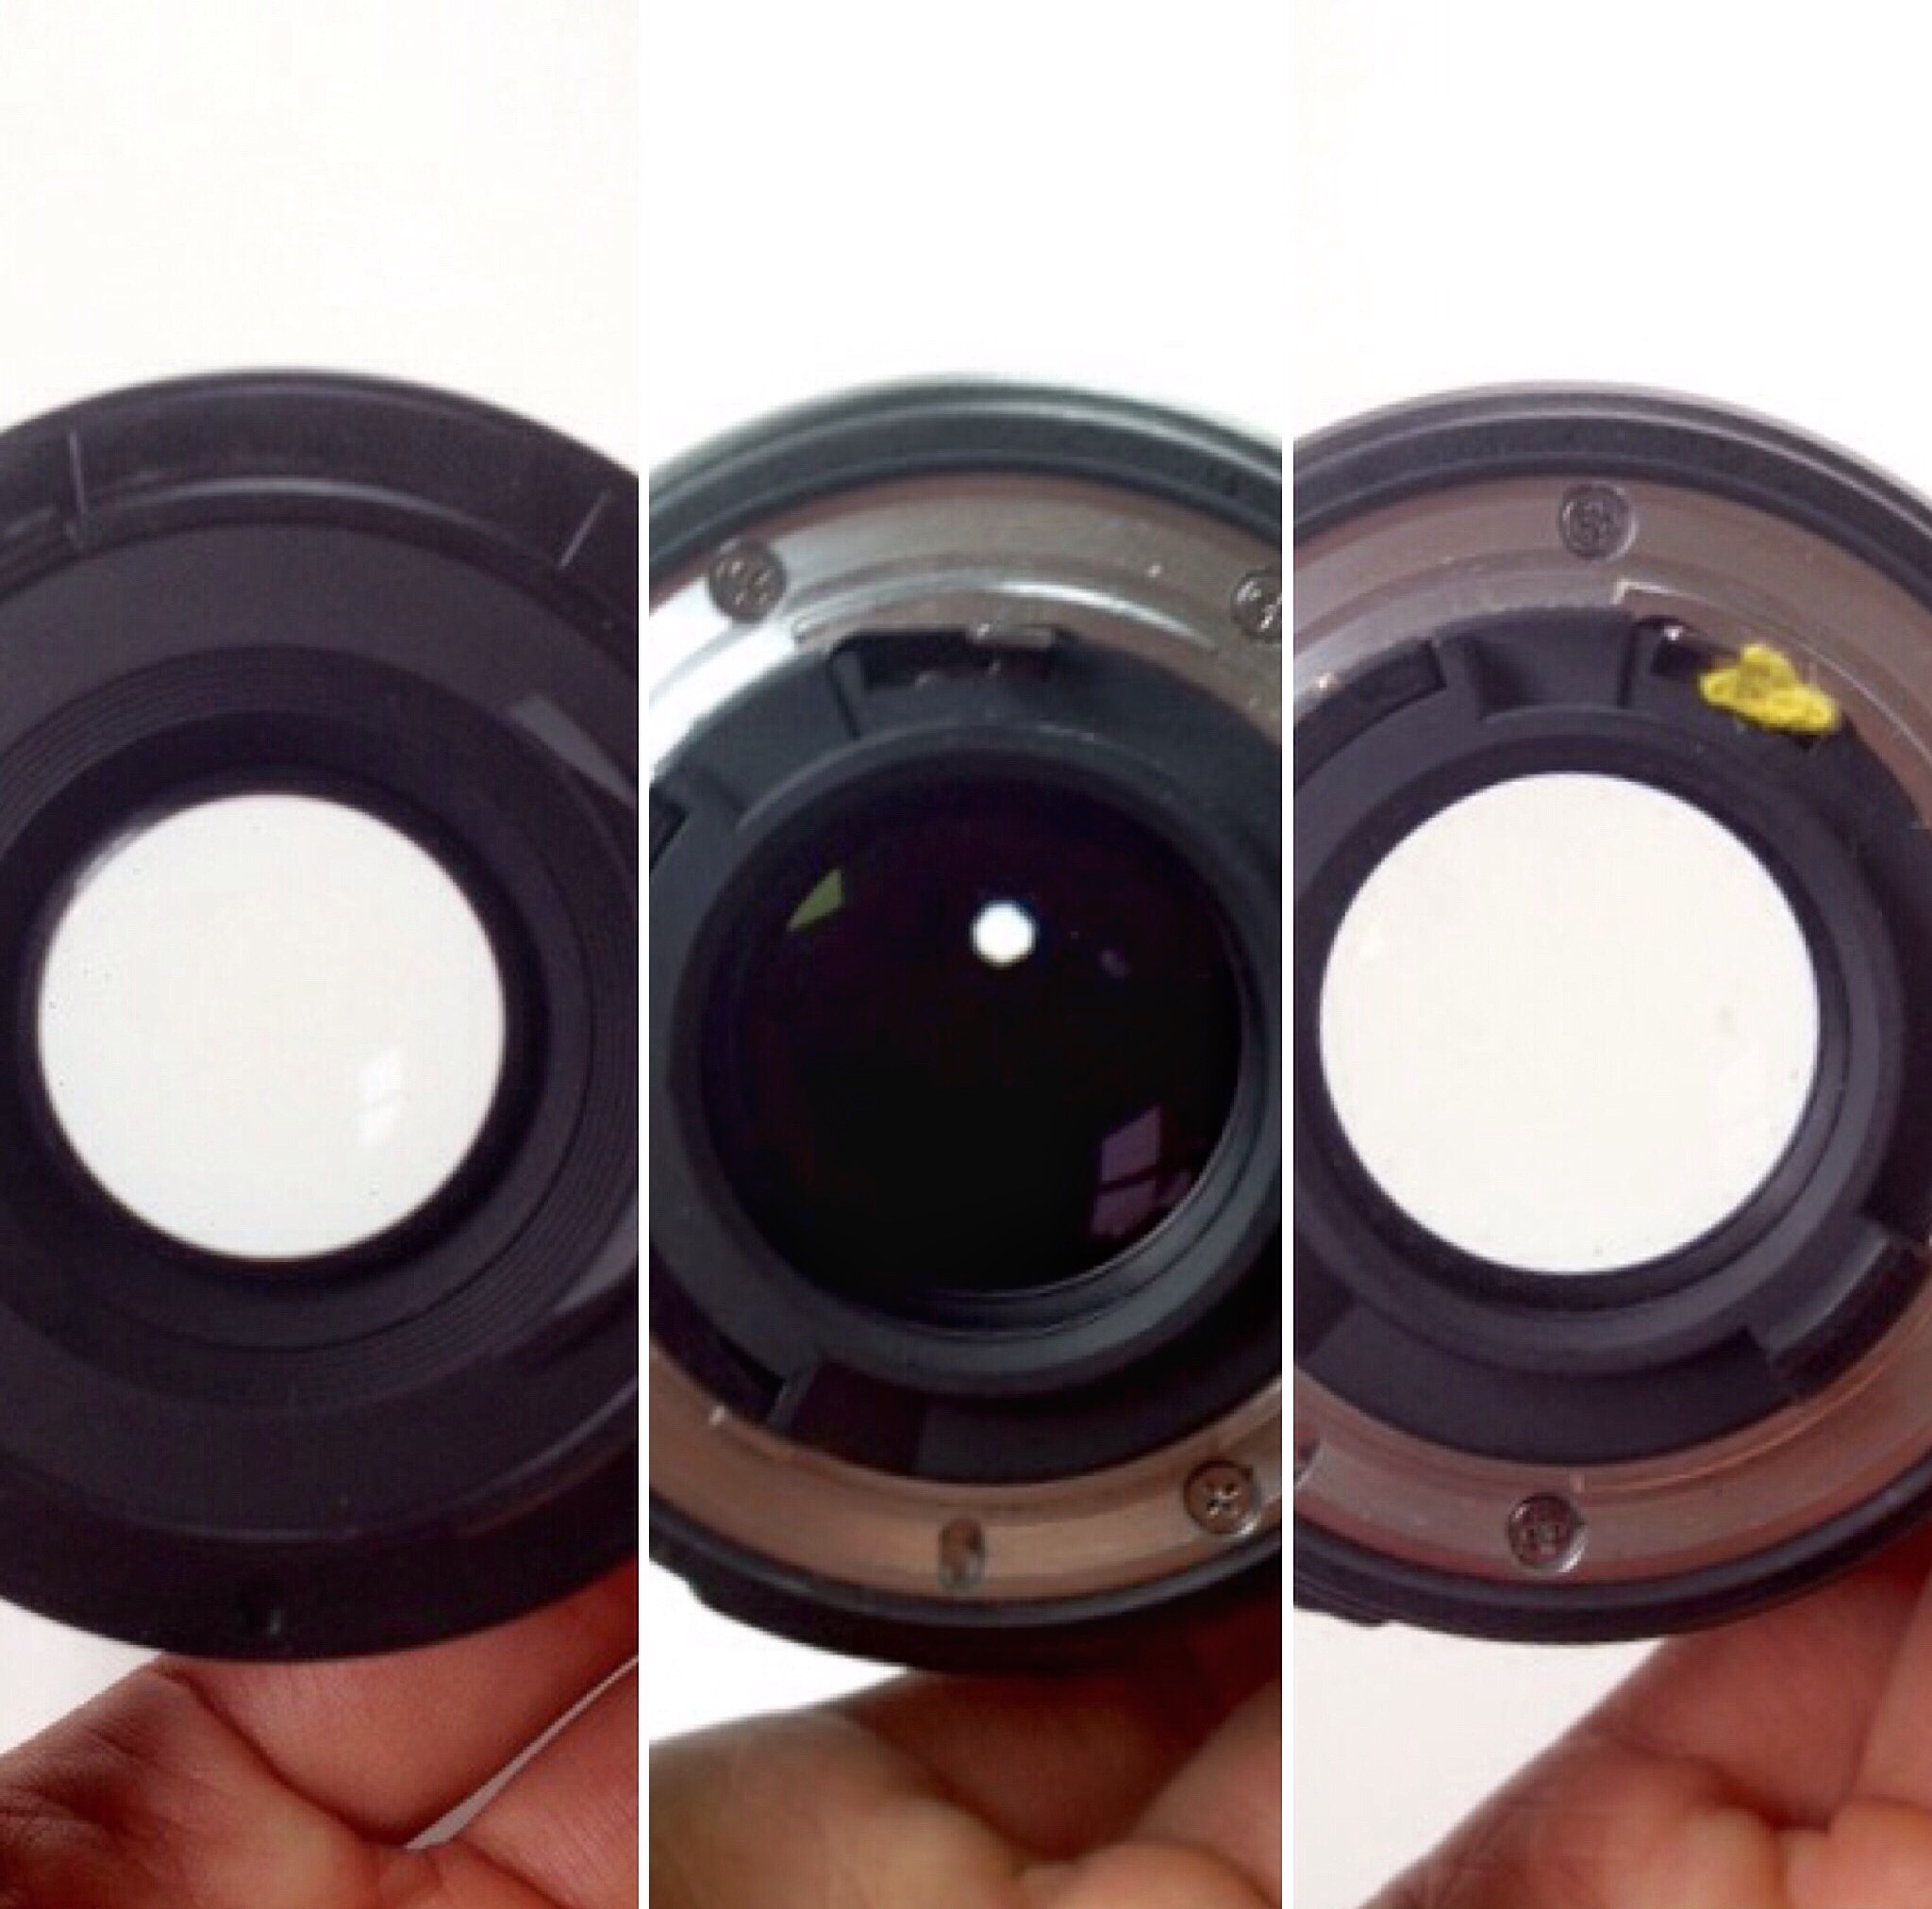 How to keep the aperture open for freelensing? On the left, aperture is open on a Canon 50mm lens compared with the Nikon AF lens (middle picture). On the right, a slip of paper used to keep the aperture open on the Nikon lens. Copyright Diana Hagues Photography.